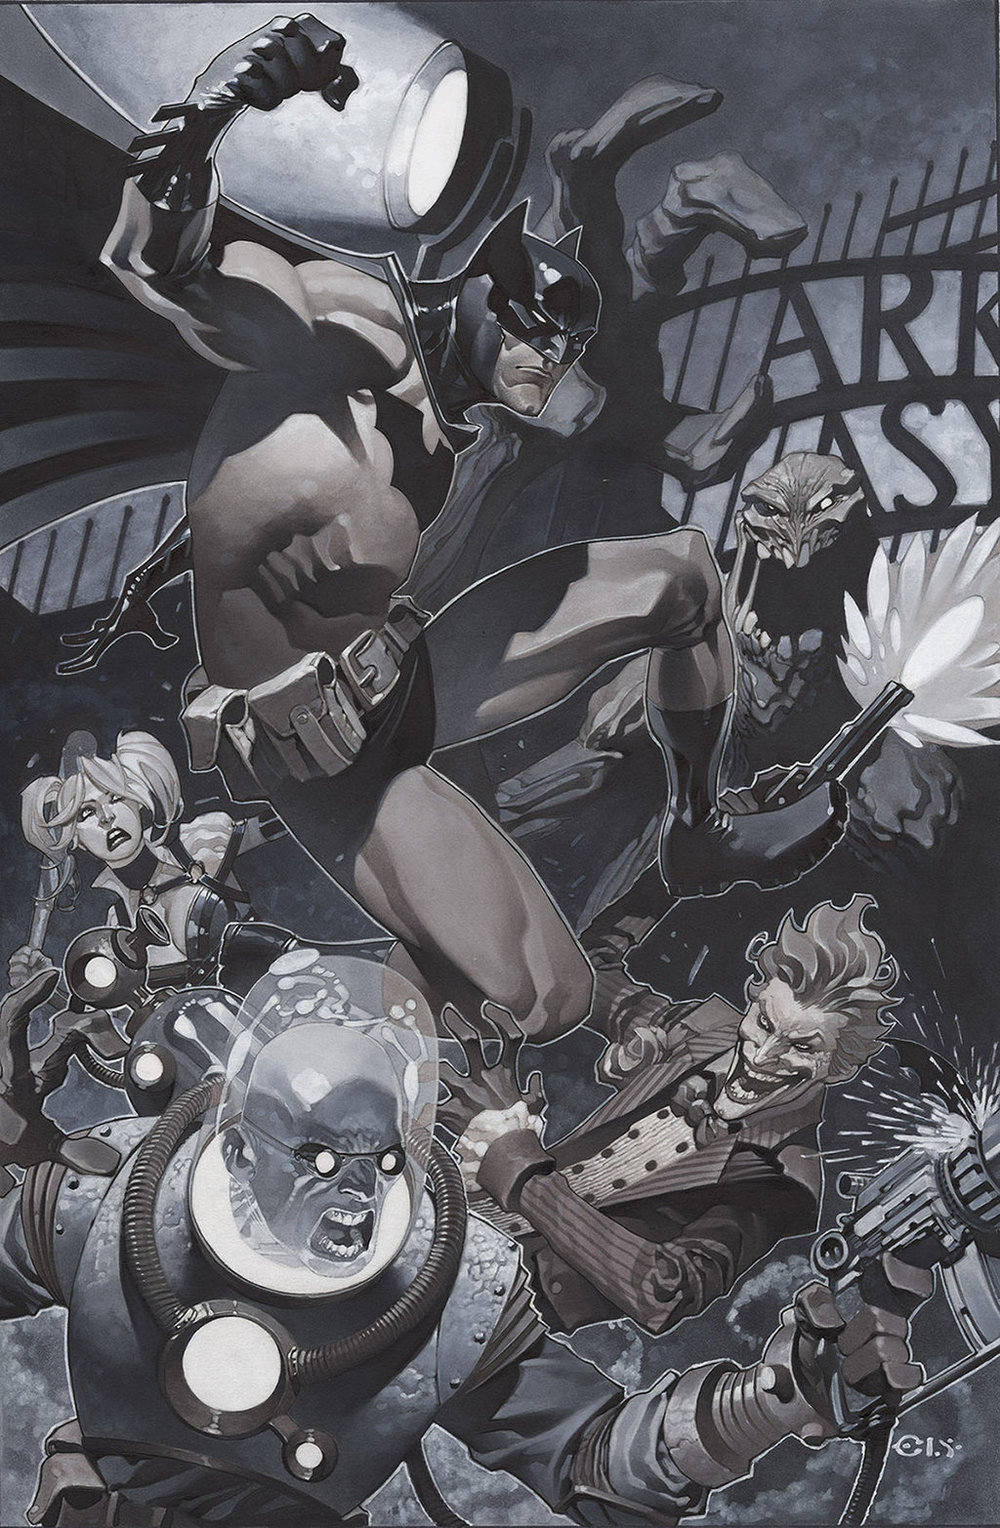 batman_arkham_trouble_by_christopherstevens-d9bahq8.jpg